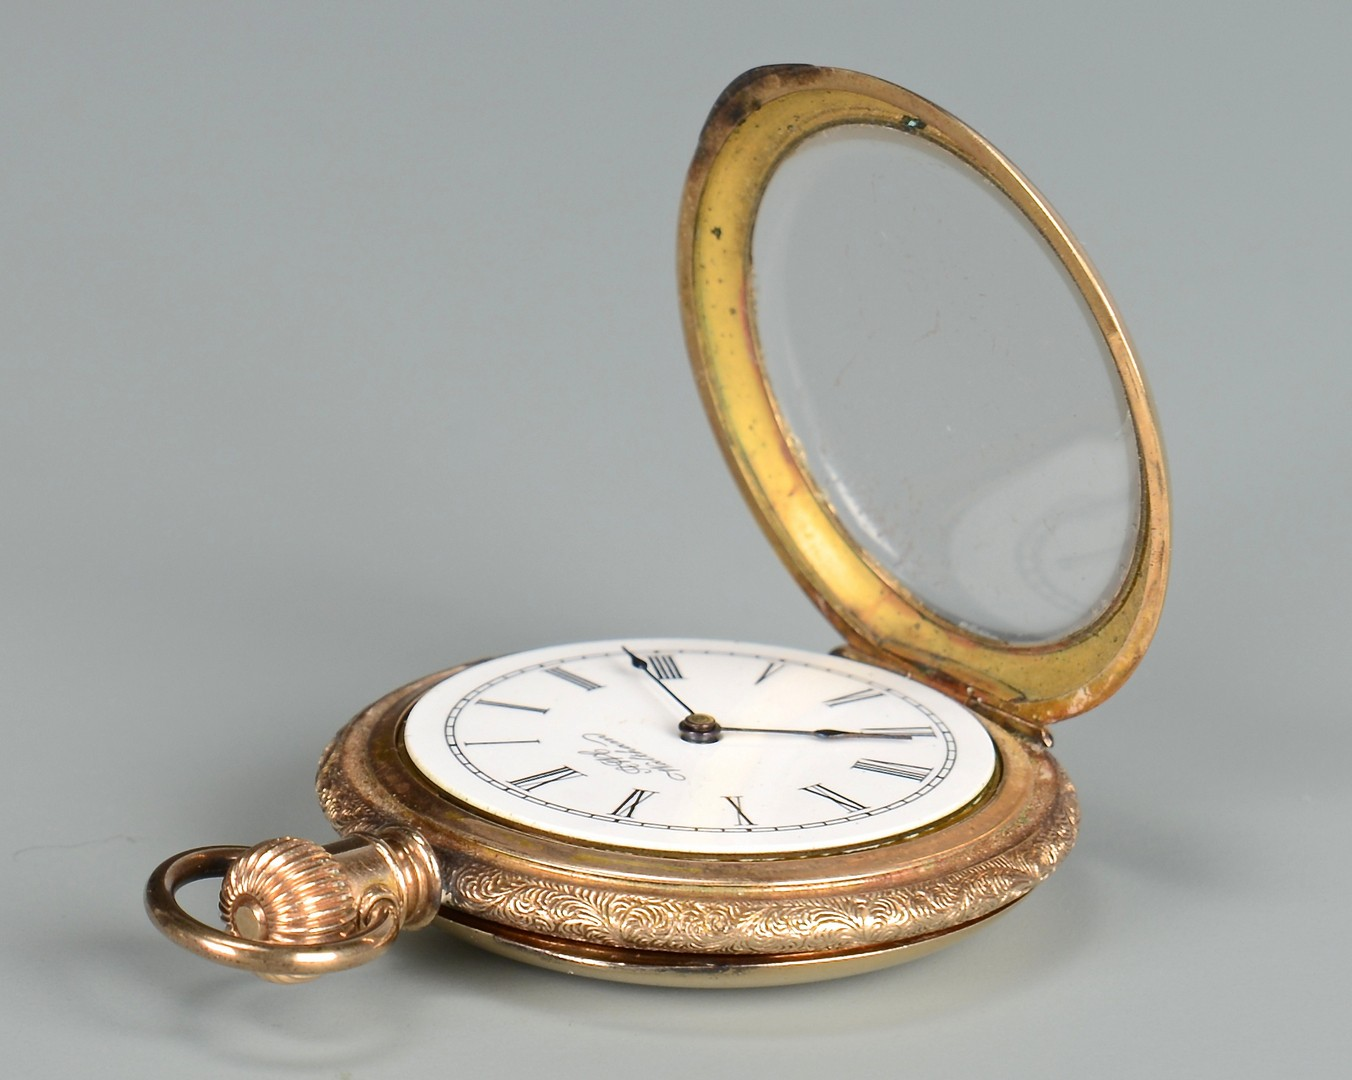 Lot 656: Waltham 14K Gold Pocket Watch